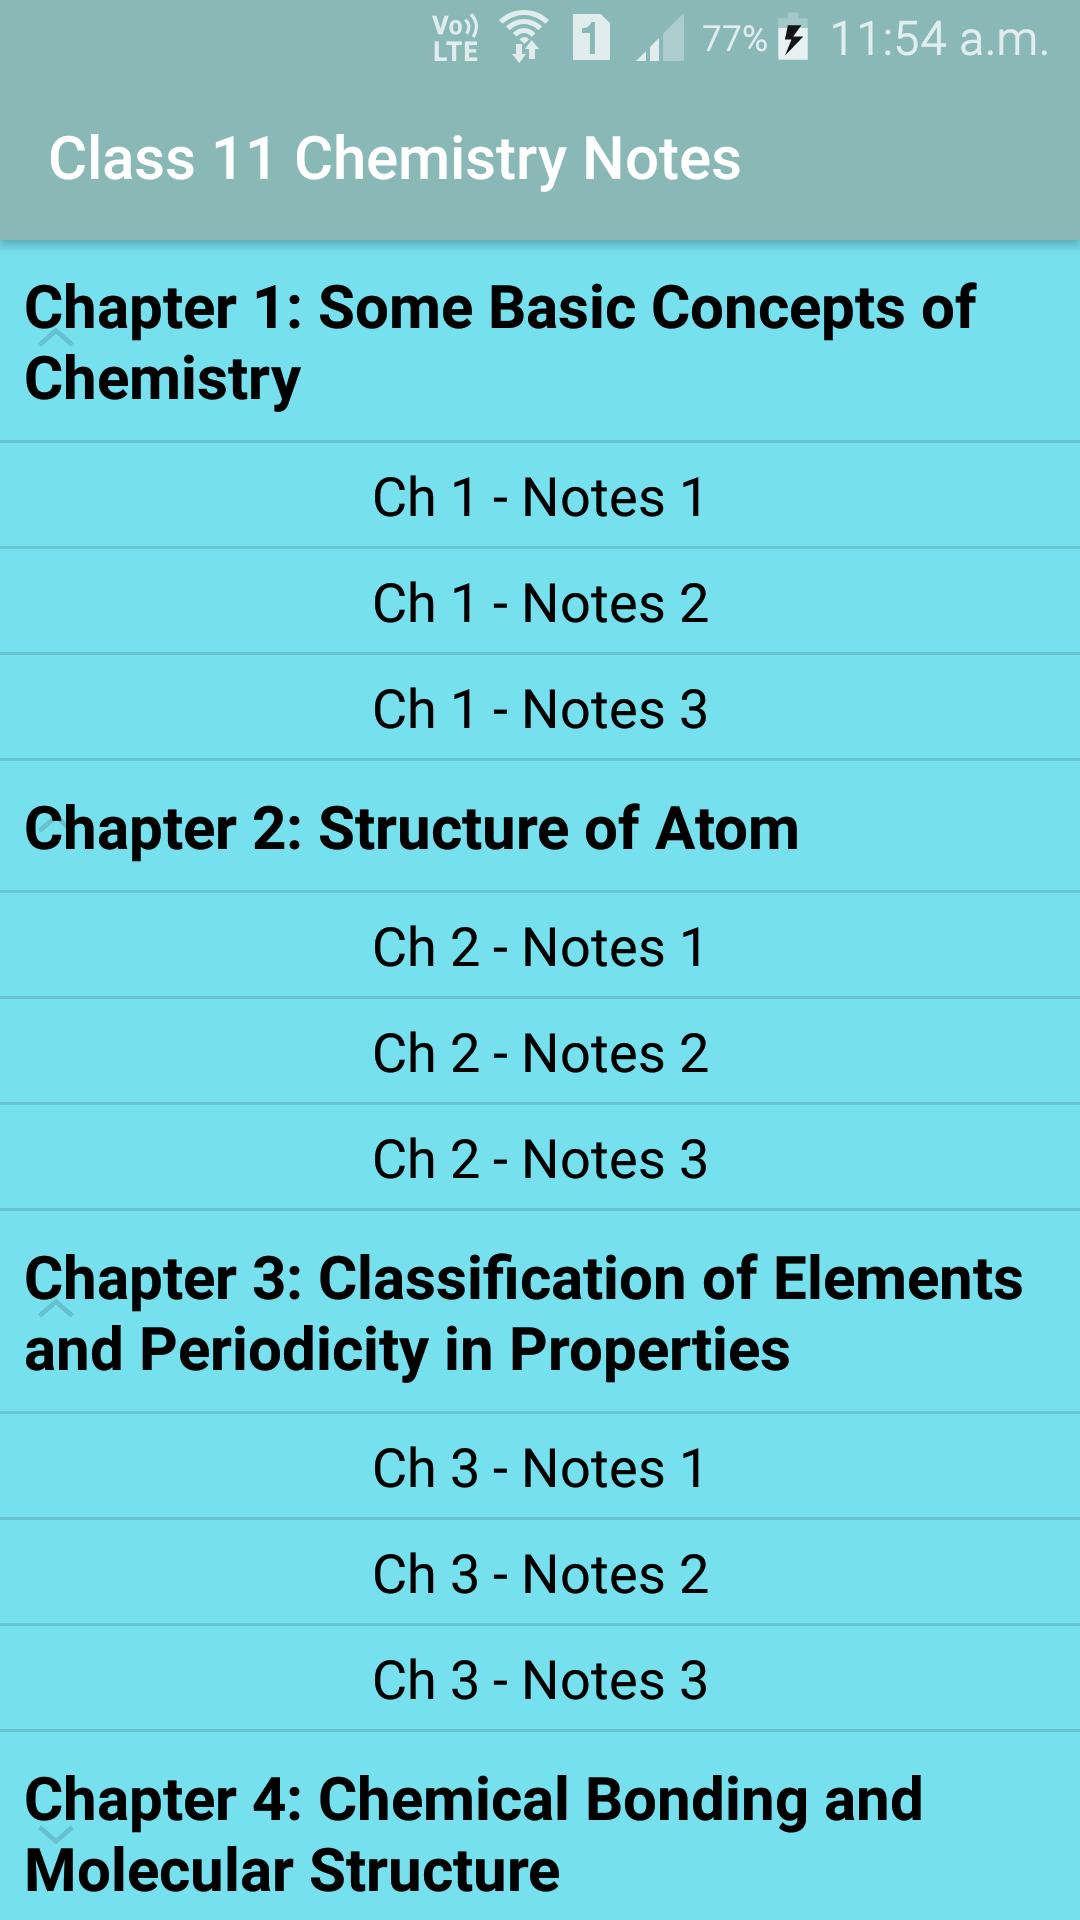 Class 11 Chemistry Notes for Android - APK Download